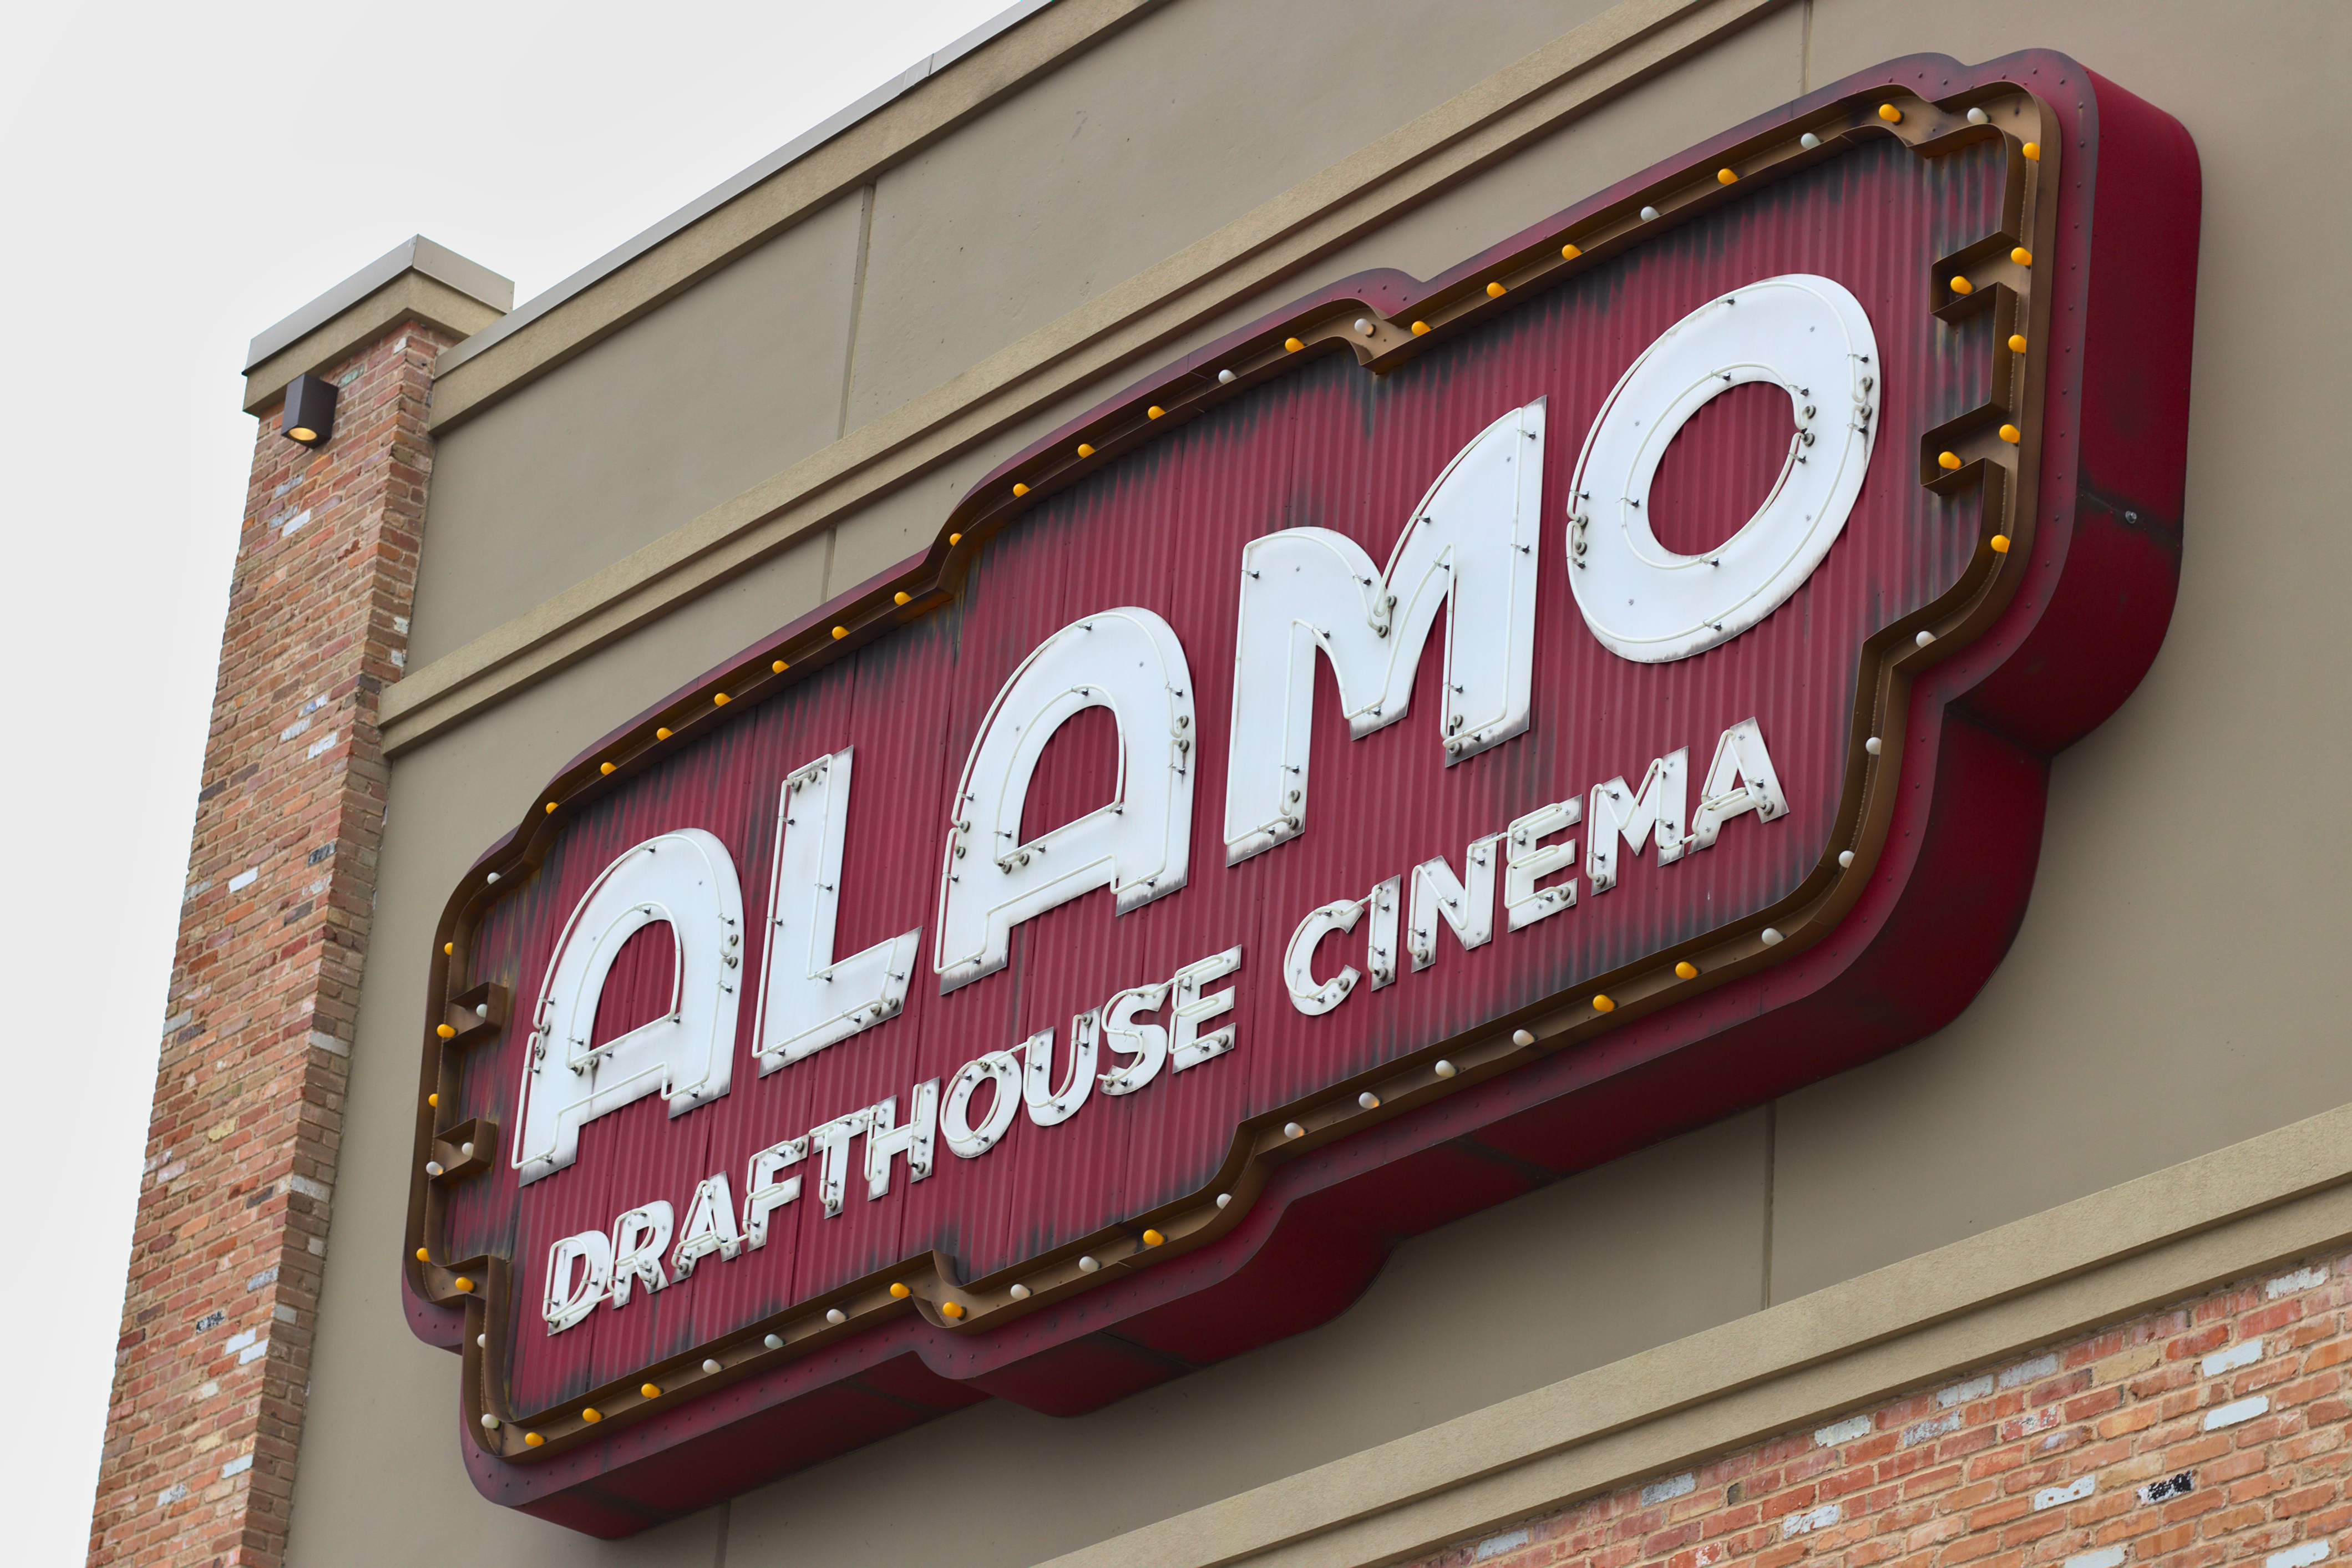 The brick and beige exterior of a building with a red and white sign, bordered with Edison bulbs, advertising the Alamo Drafthouse Cinema.